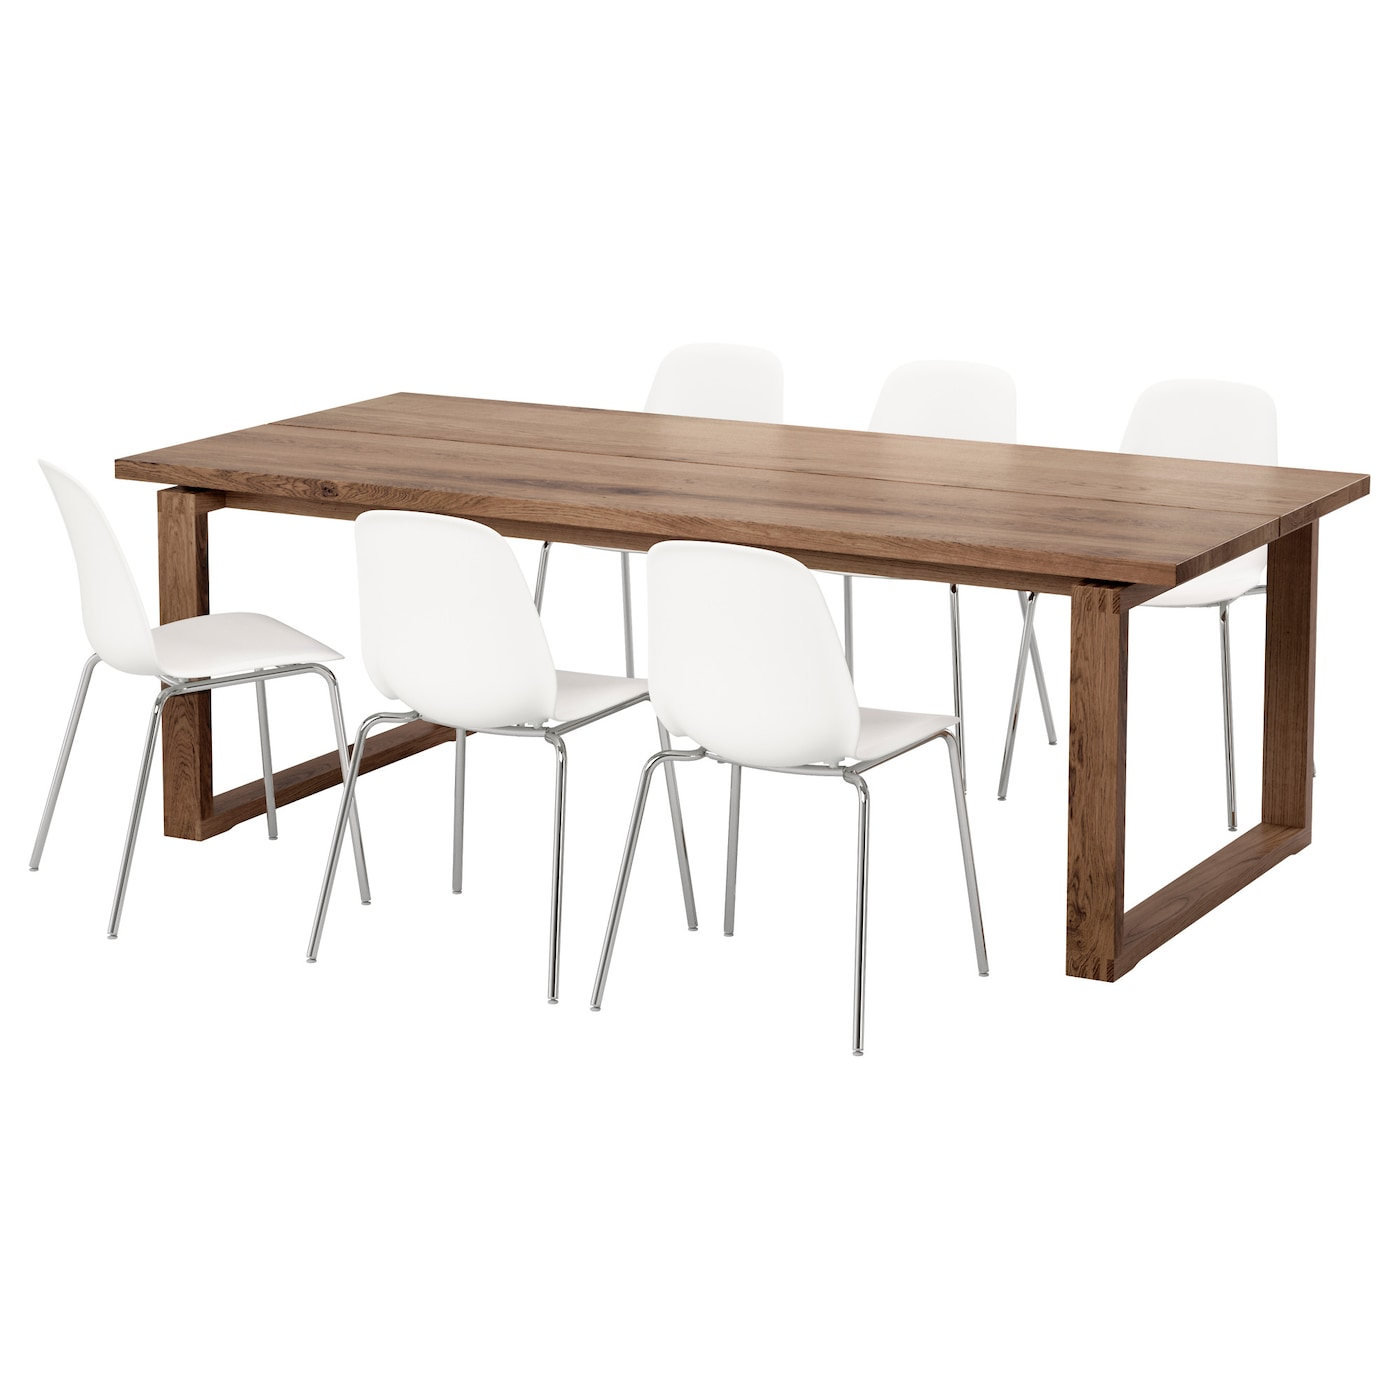 IKEA LEIFARNE/MÖRBYLÅNGA table and 6 chairs